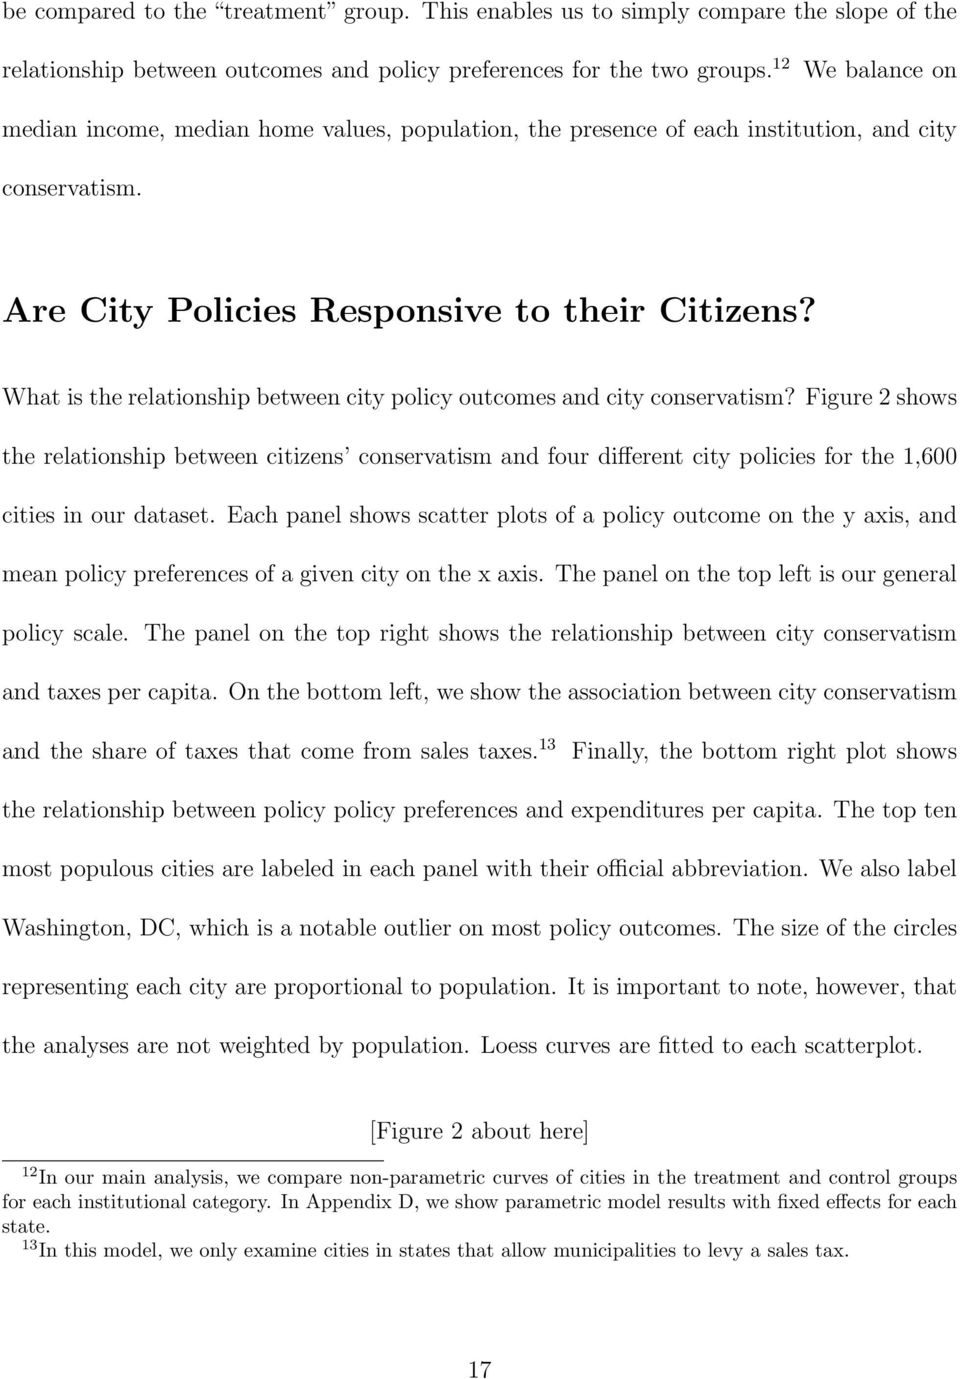 What is the relationship between city policy outcomes and city conservatism?